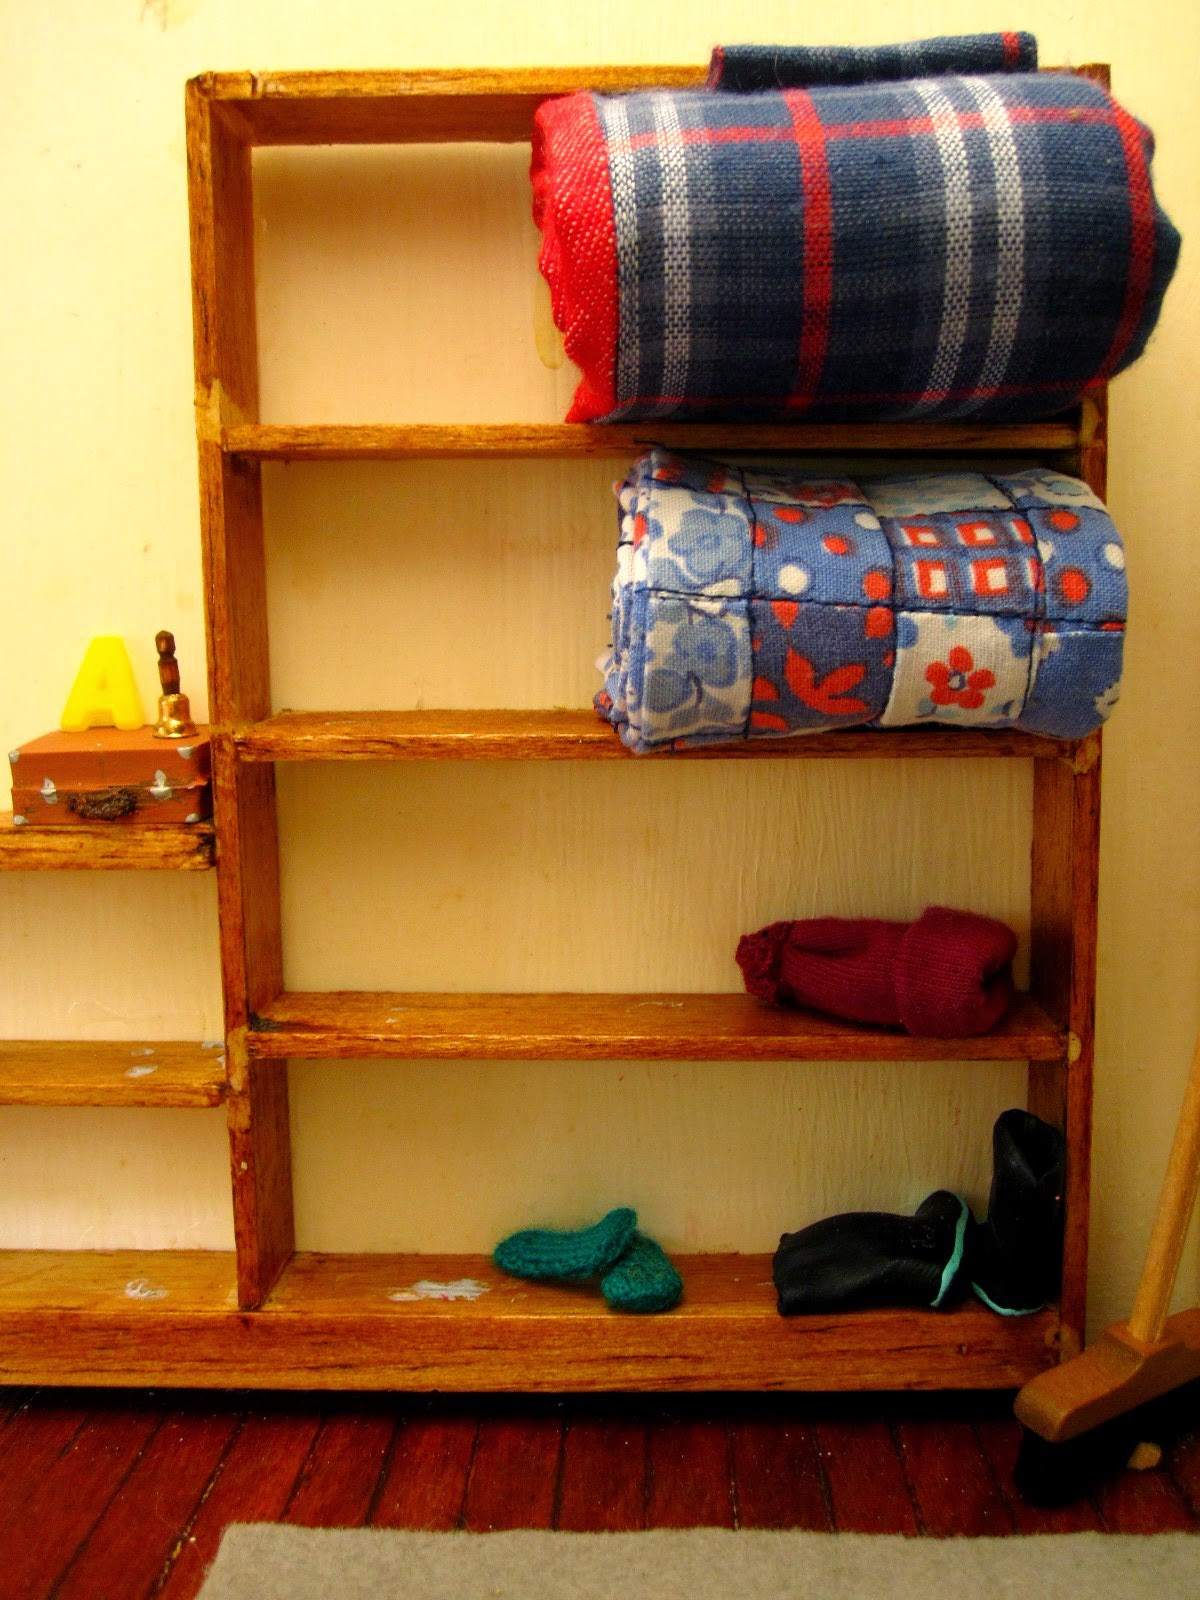 Miniature shelving with a rolled up doona on the top shelf and a folded vintage quilt on the shelf below, On the bottom shelf is a pair of green socks and a pair of gumboots.